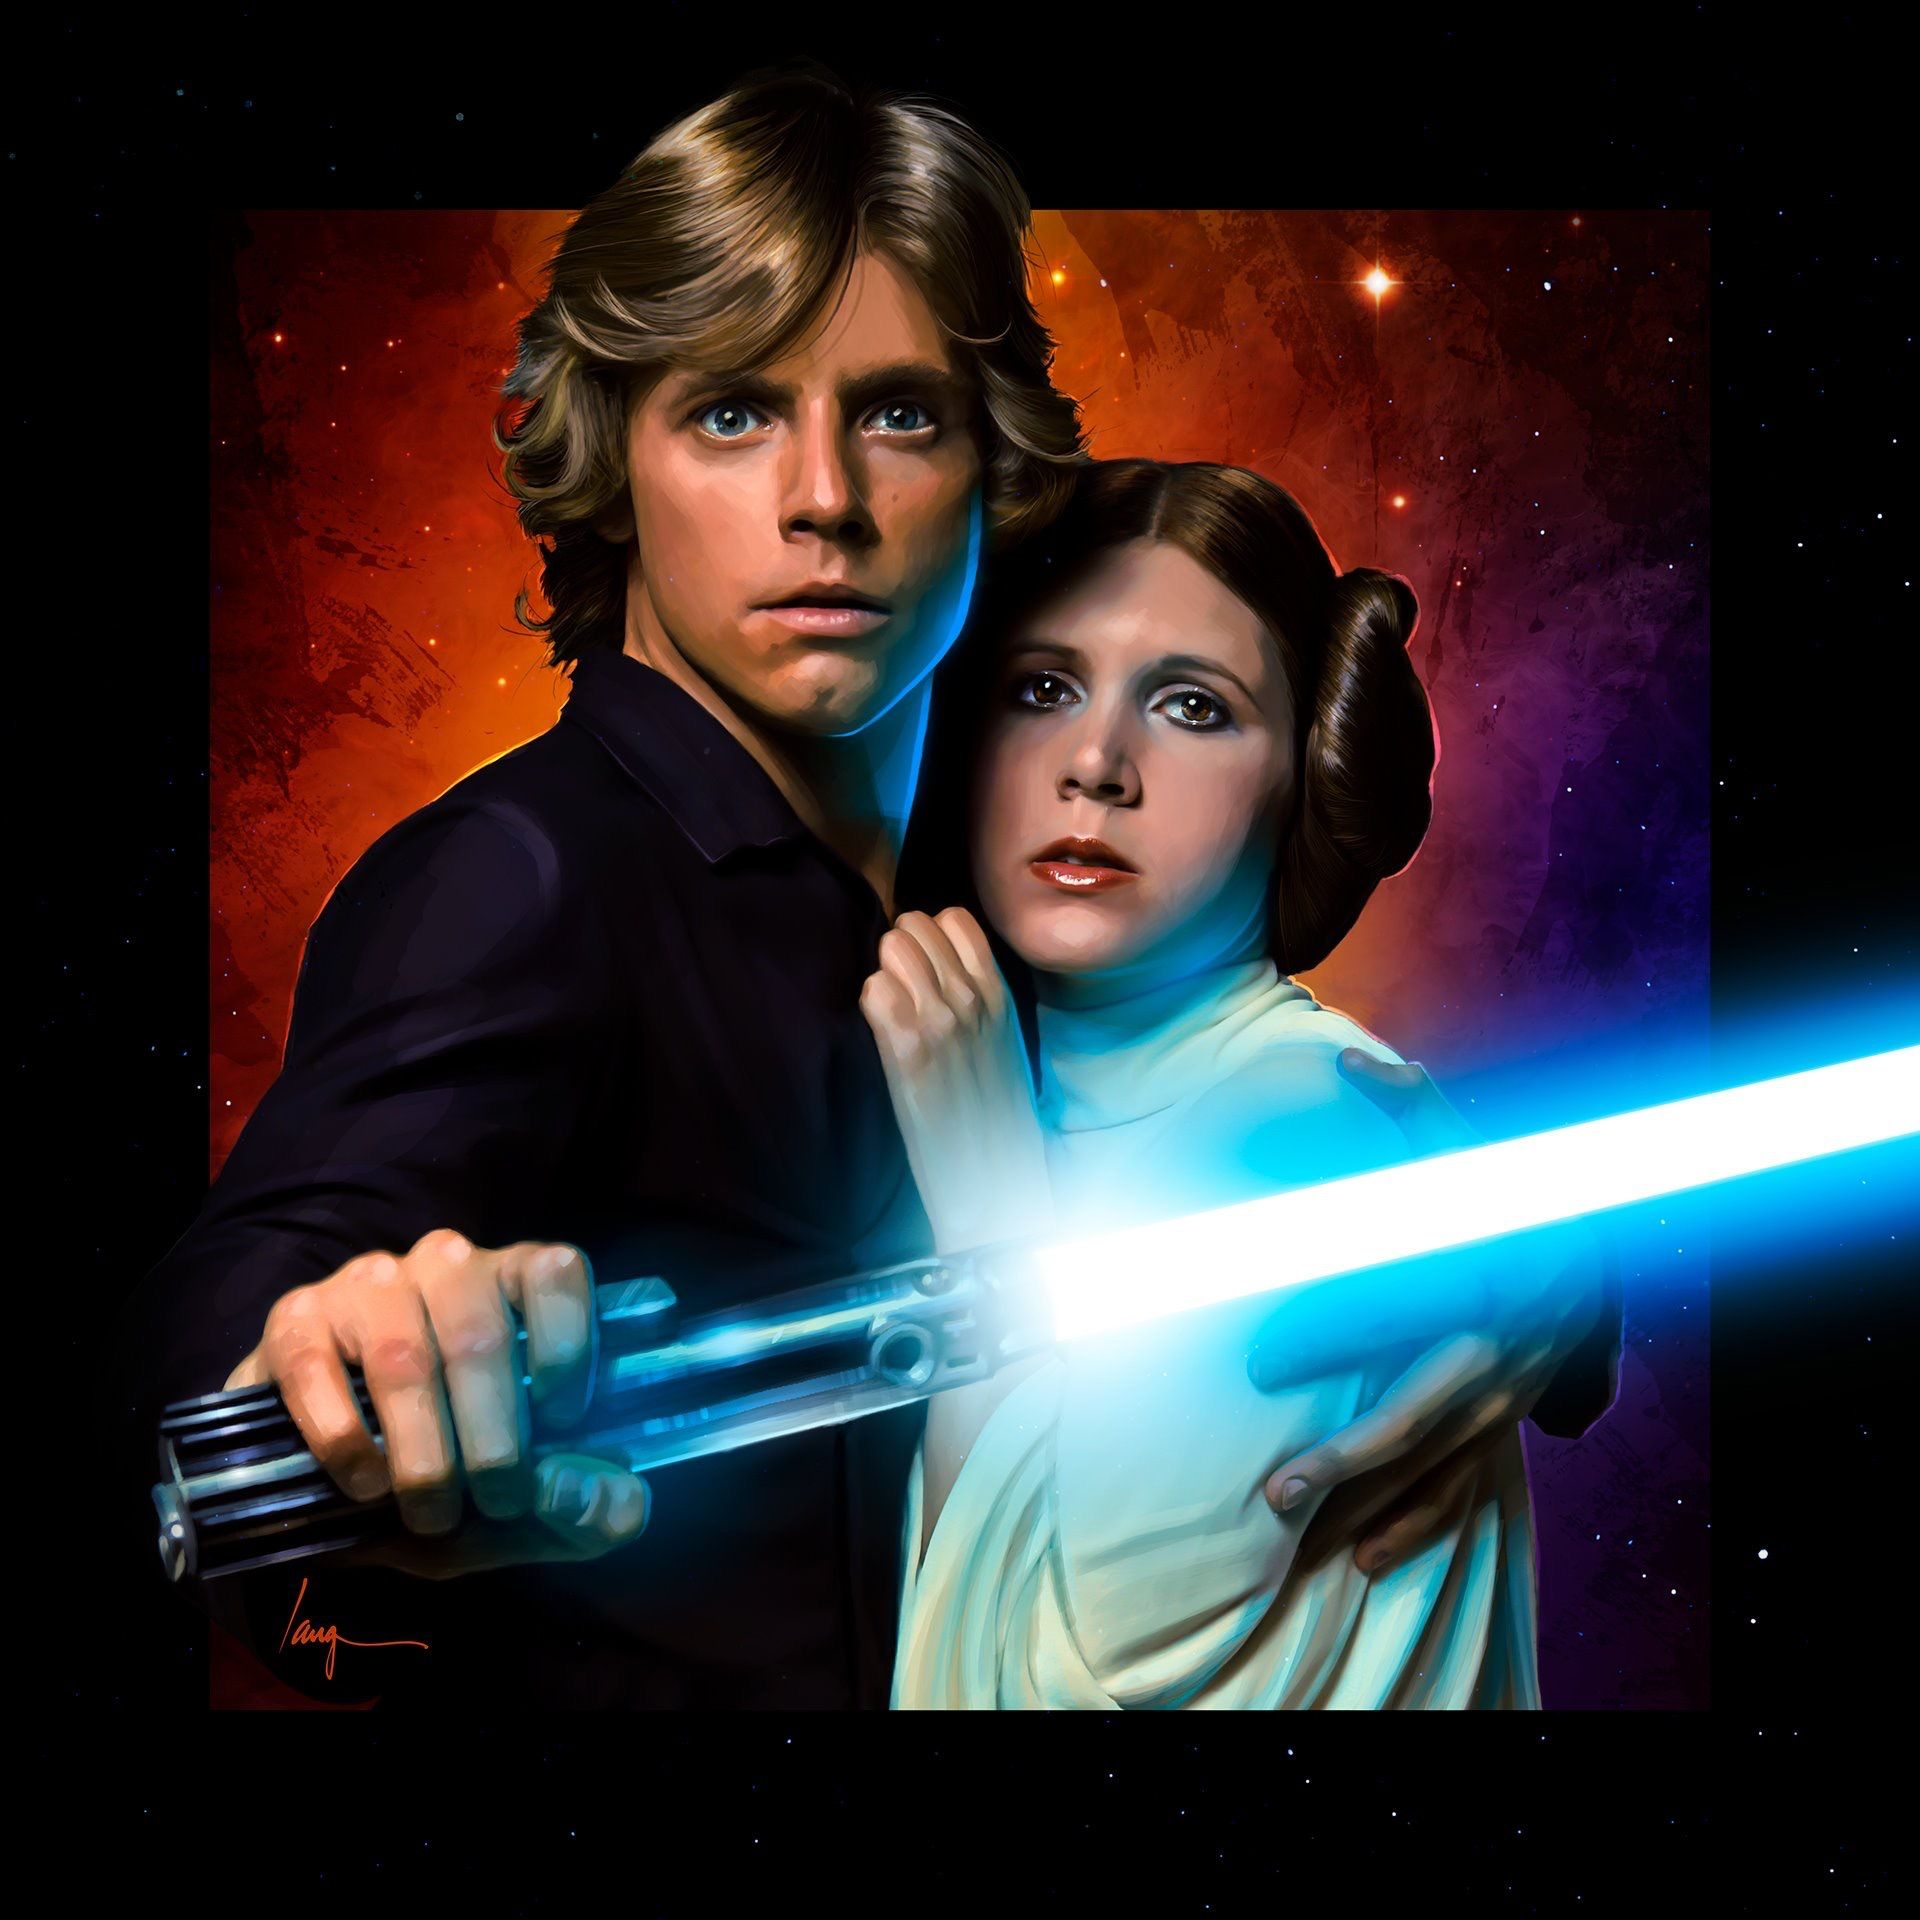 Pin By Henry Gillis On Star Wars Network Star Wars Icons Star